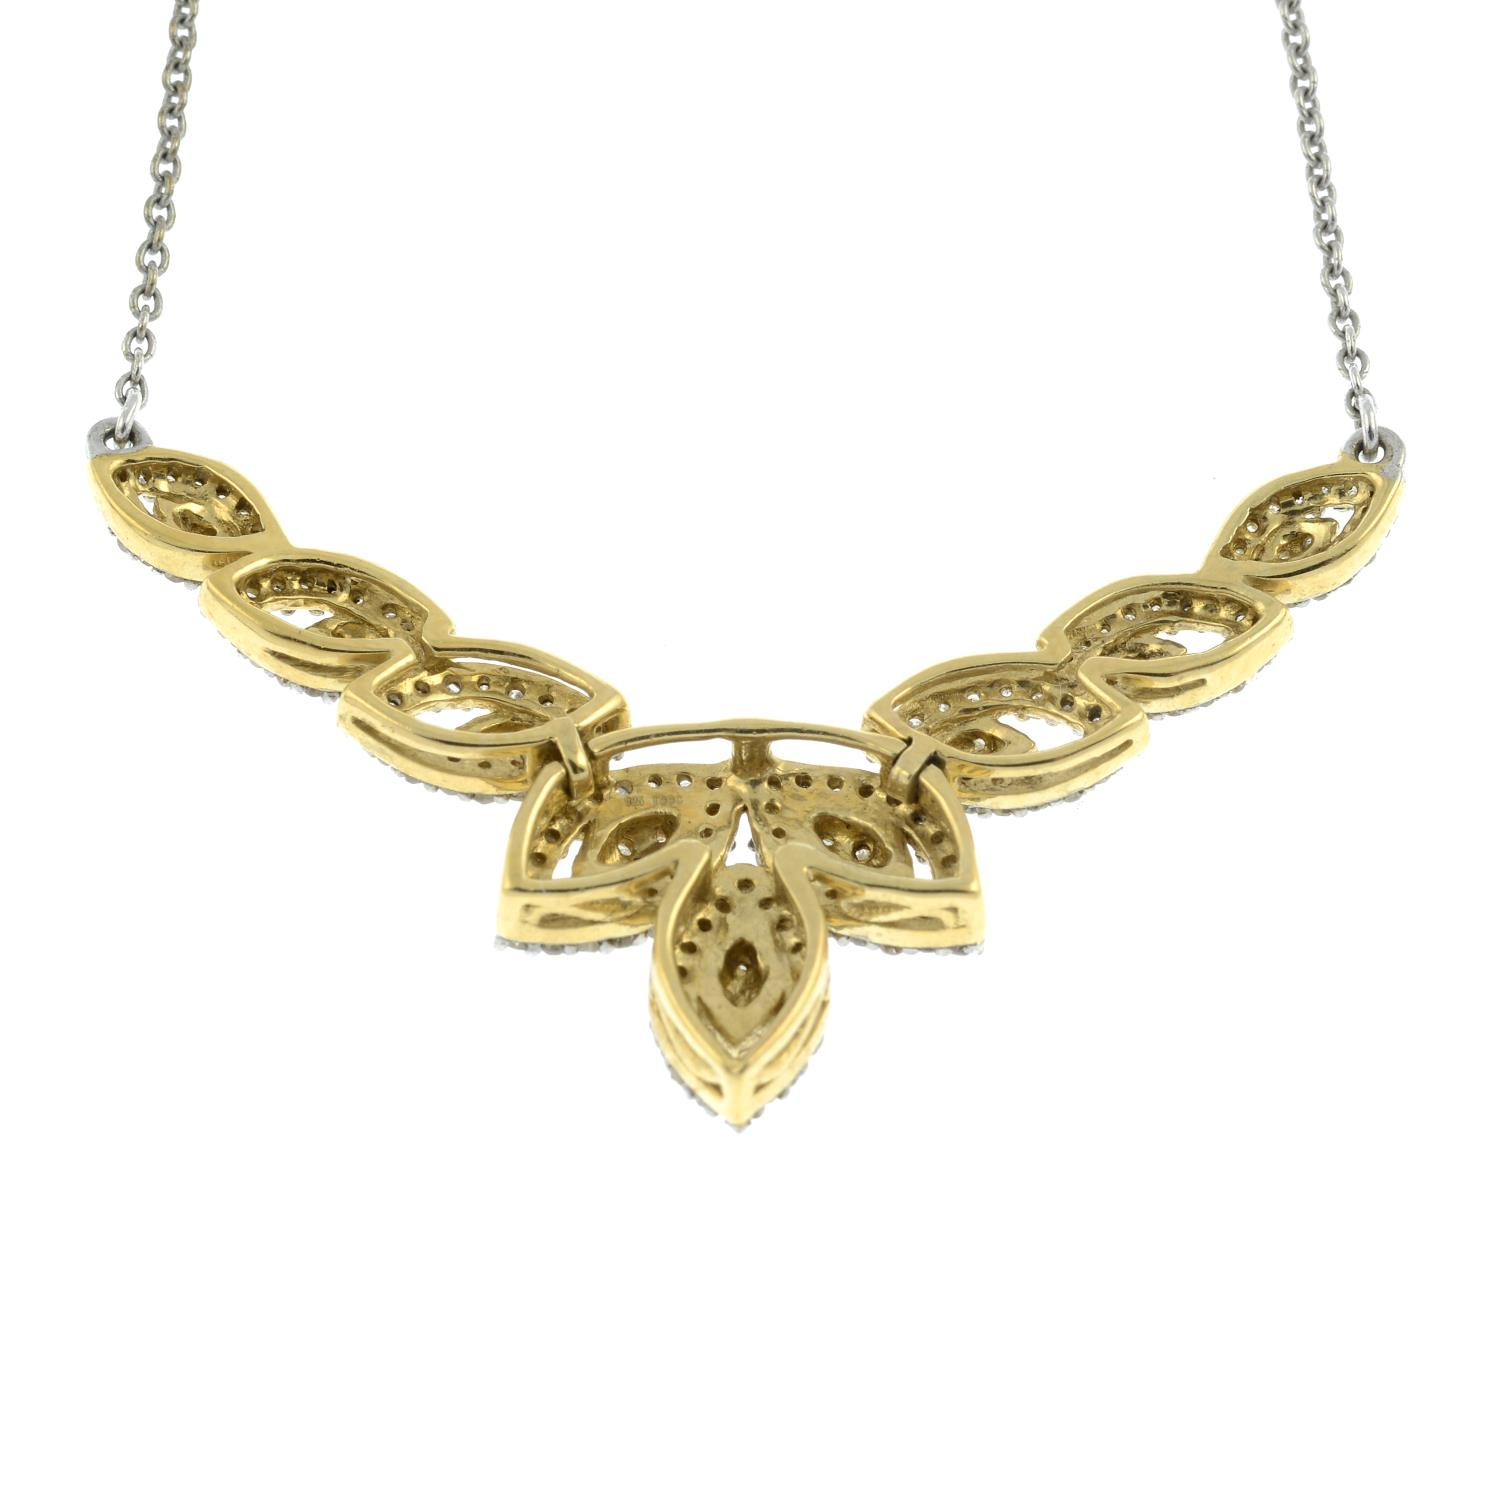 A diamond necklace.Stamped 925.Lengths 46.5cms. - Image 2 of 3